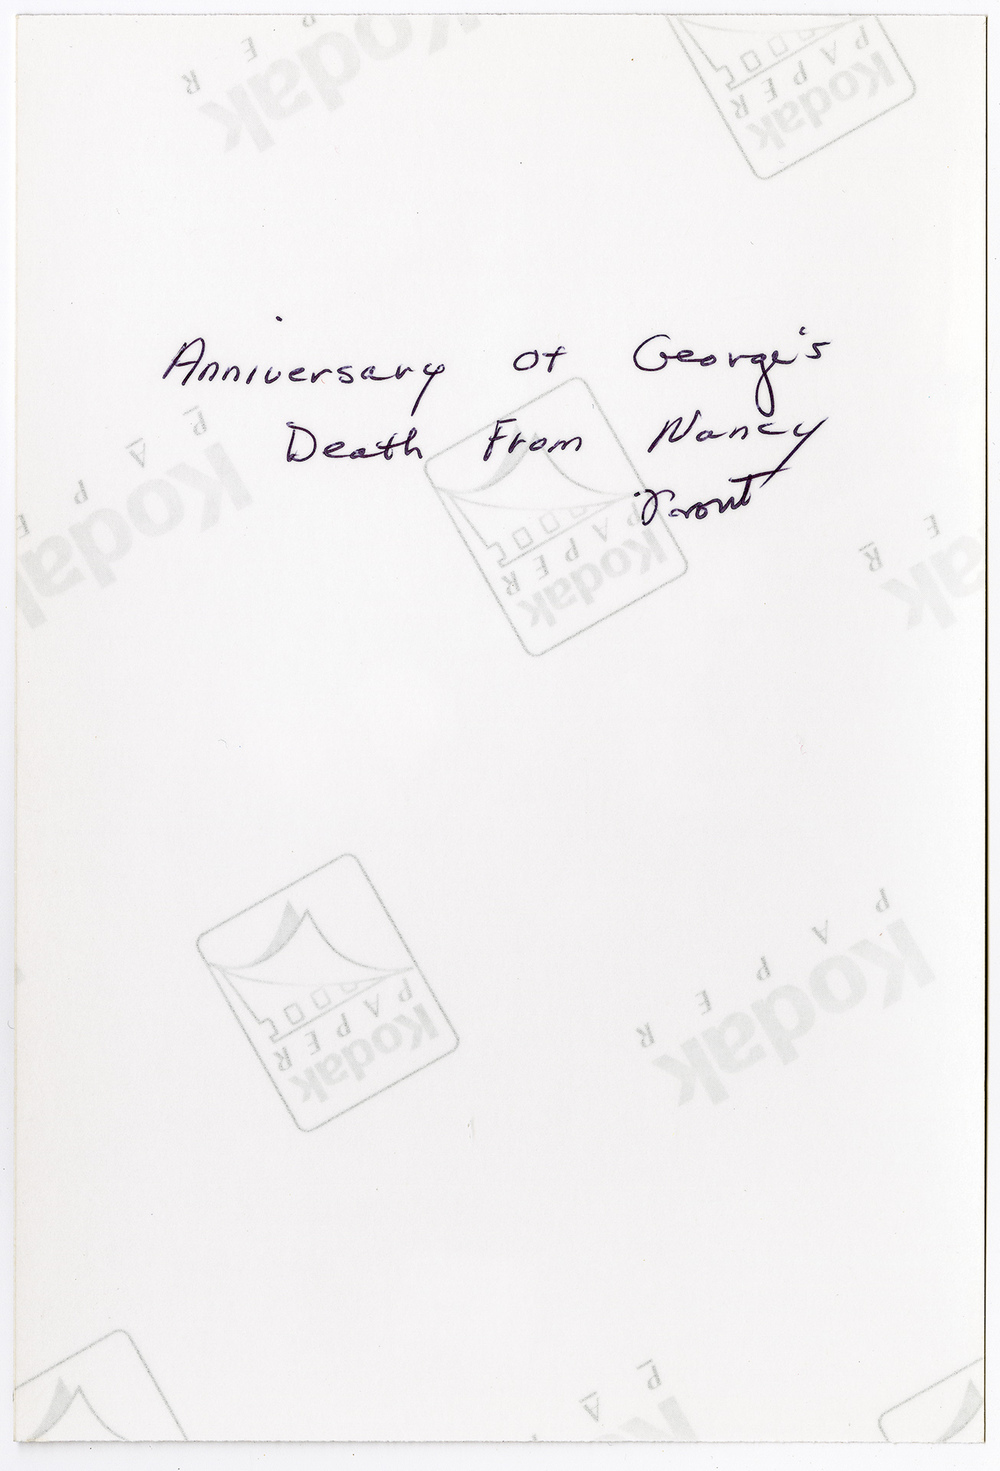 Anniversary of George's Death